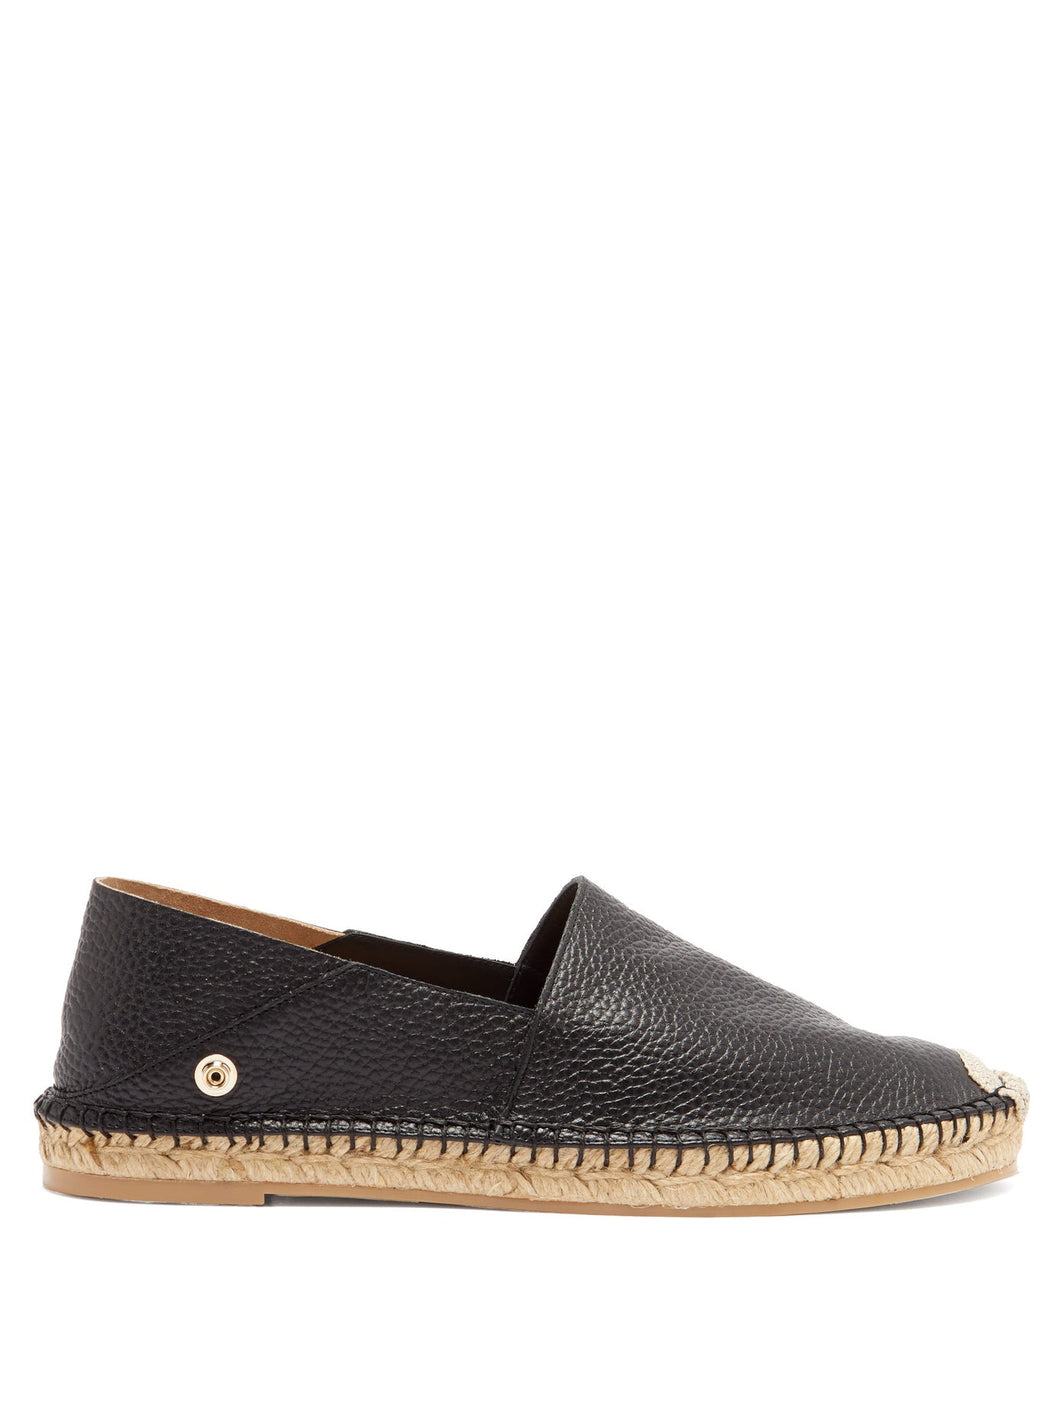 Feather-strap leather espadrilles